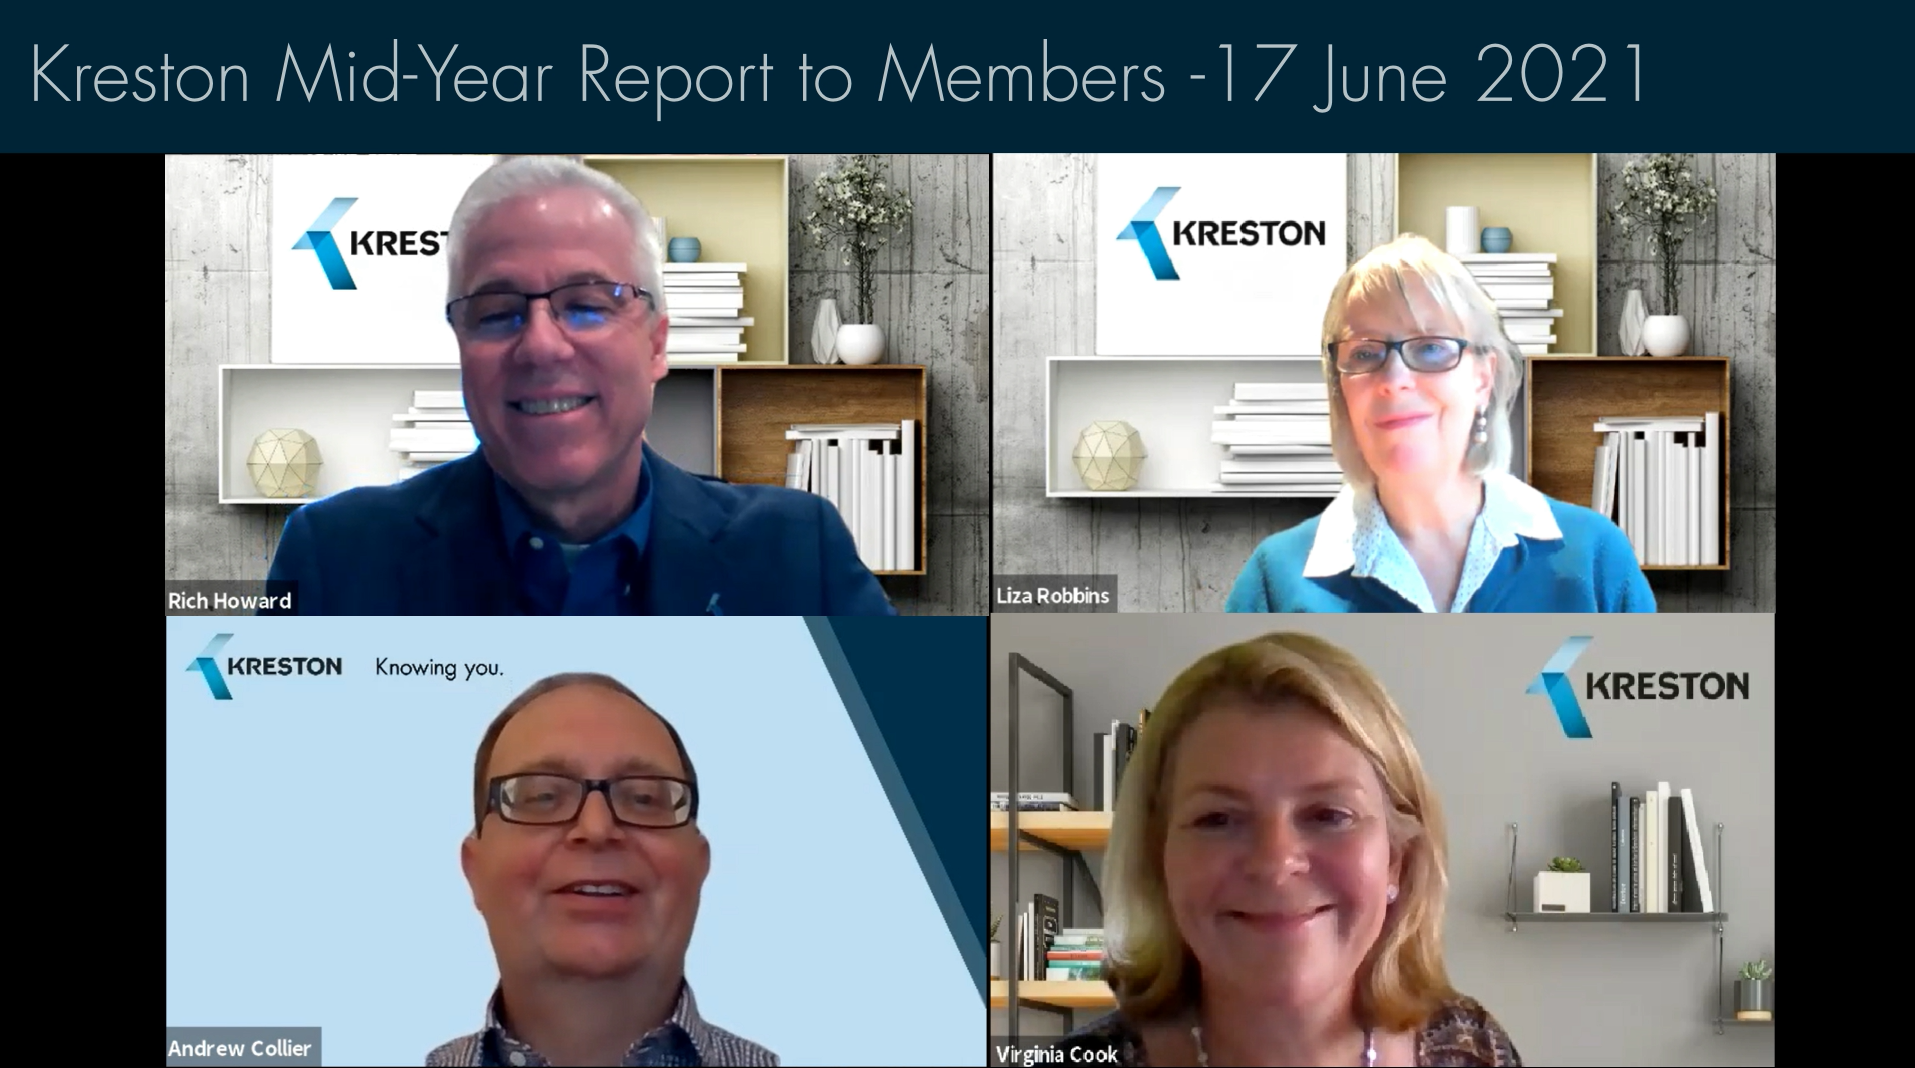 RECENT EVENT: Kreston Mid-Year Report for Members